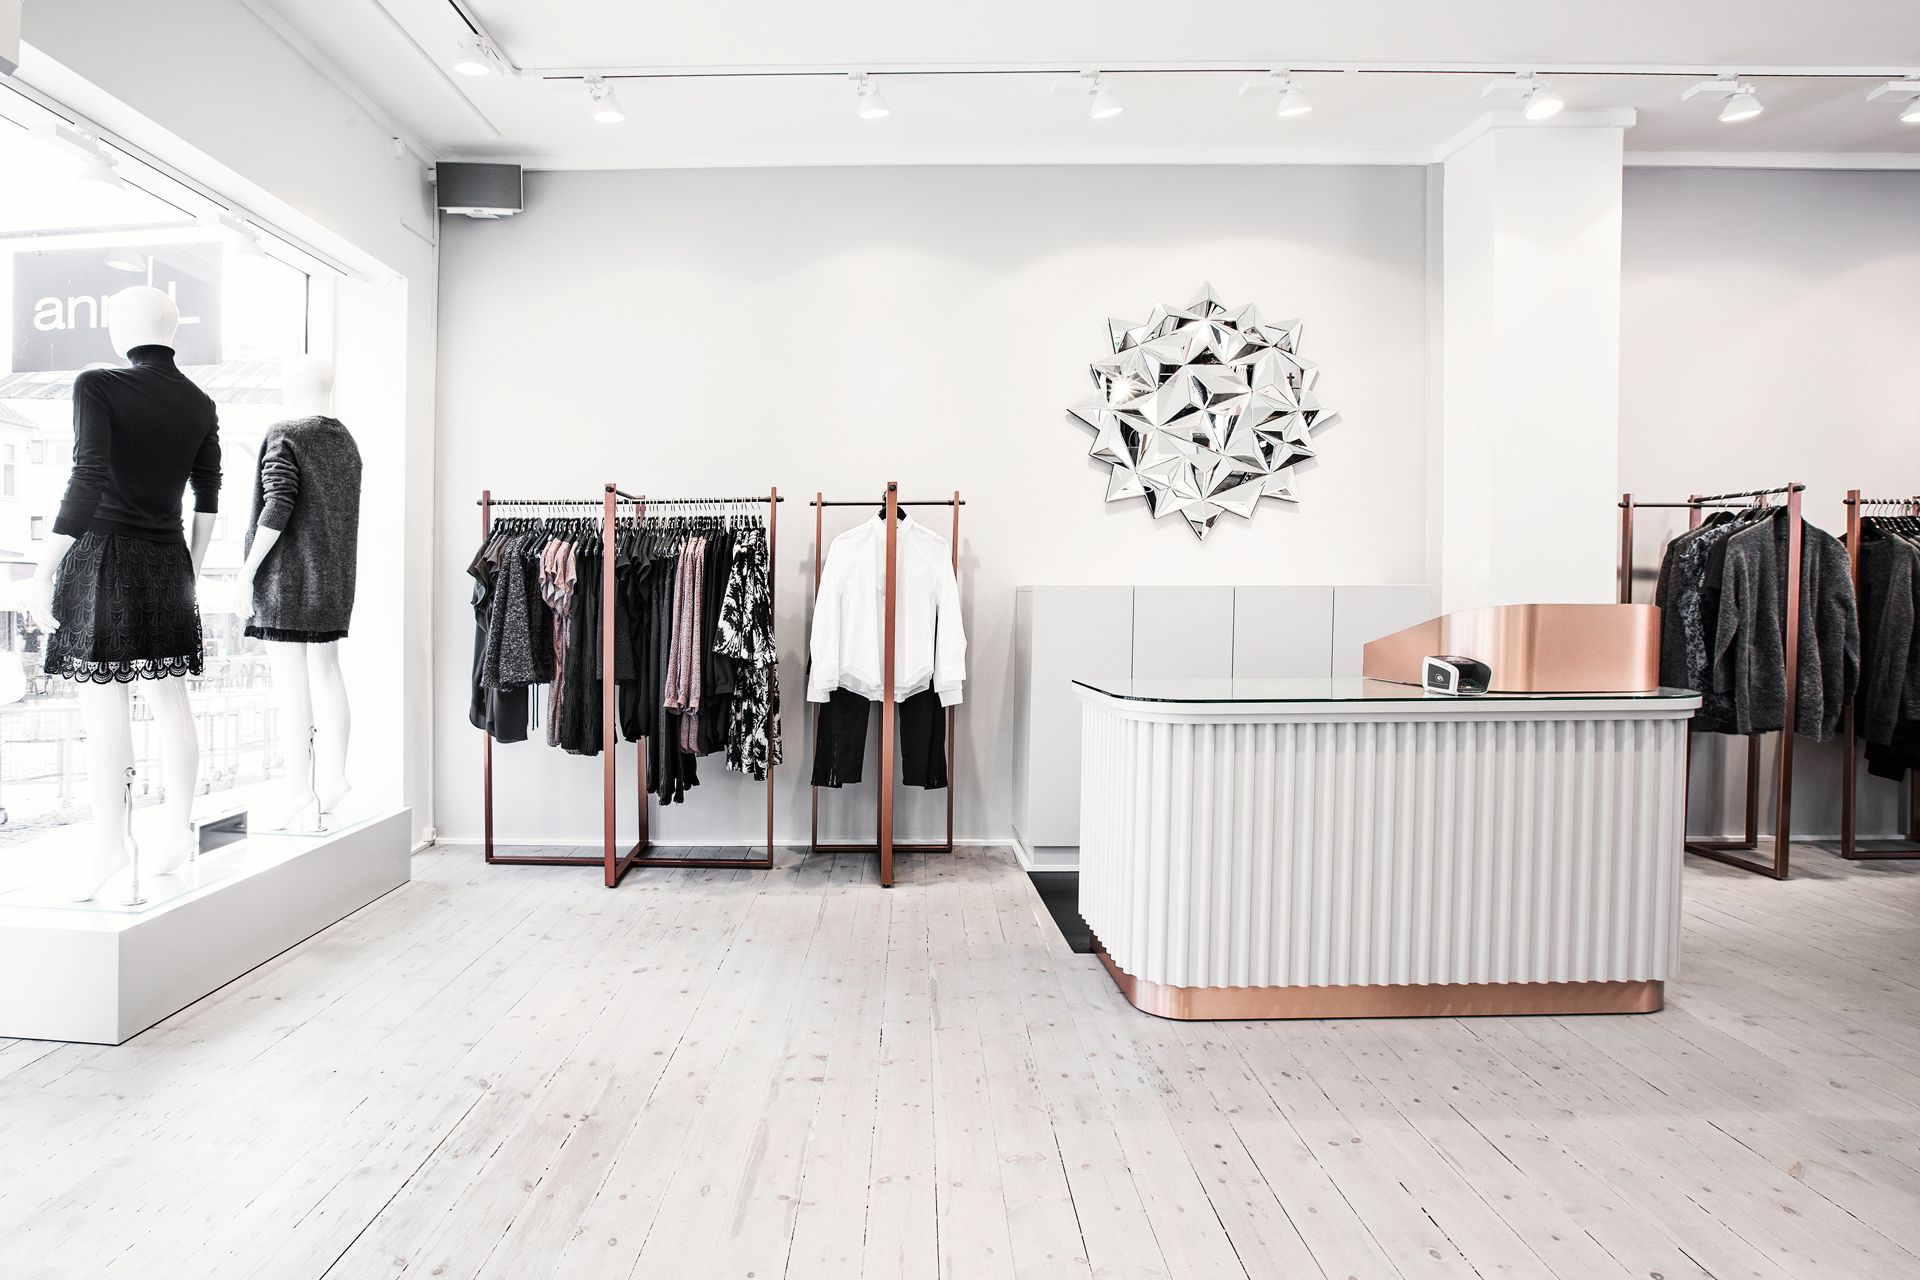 Helle Flou designed the interior for the new clothing shop AnnL in